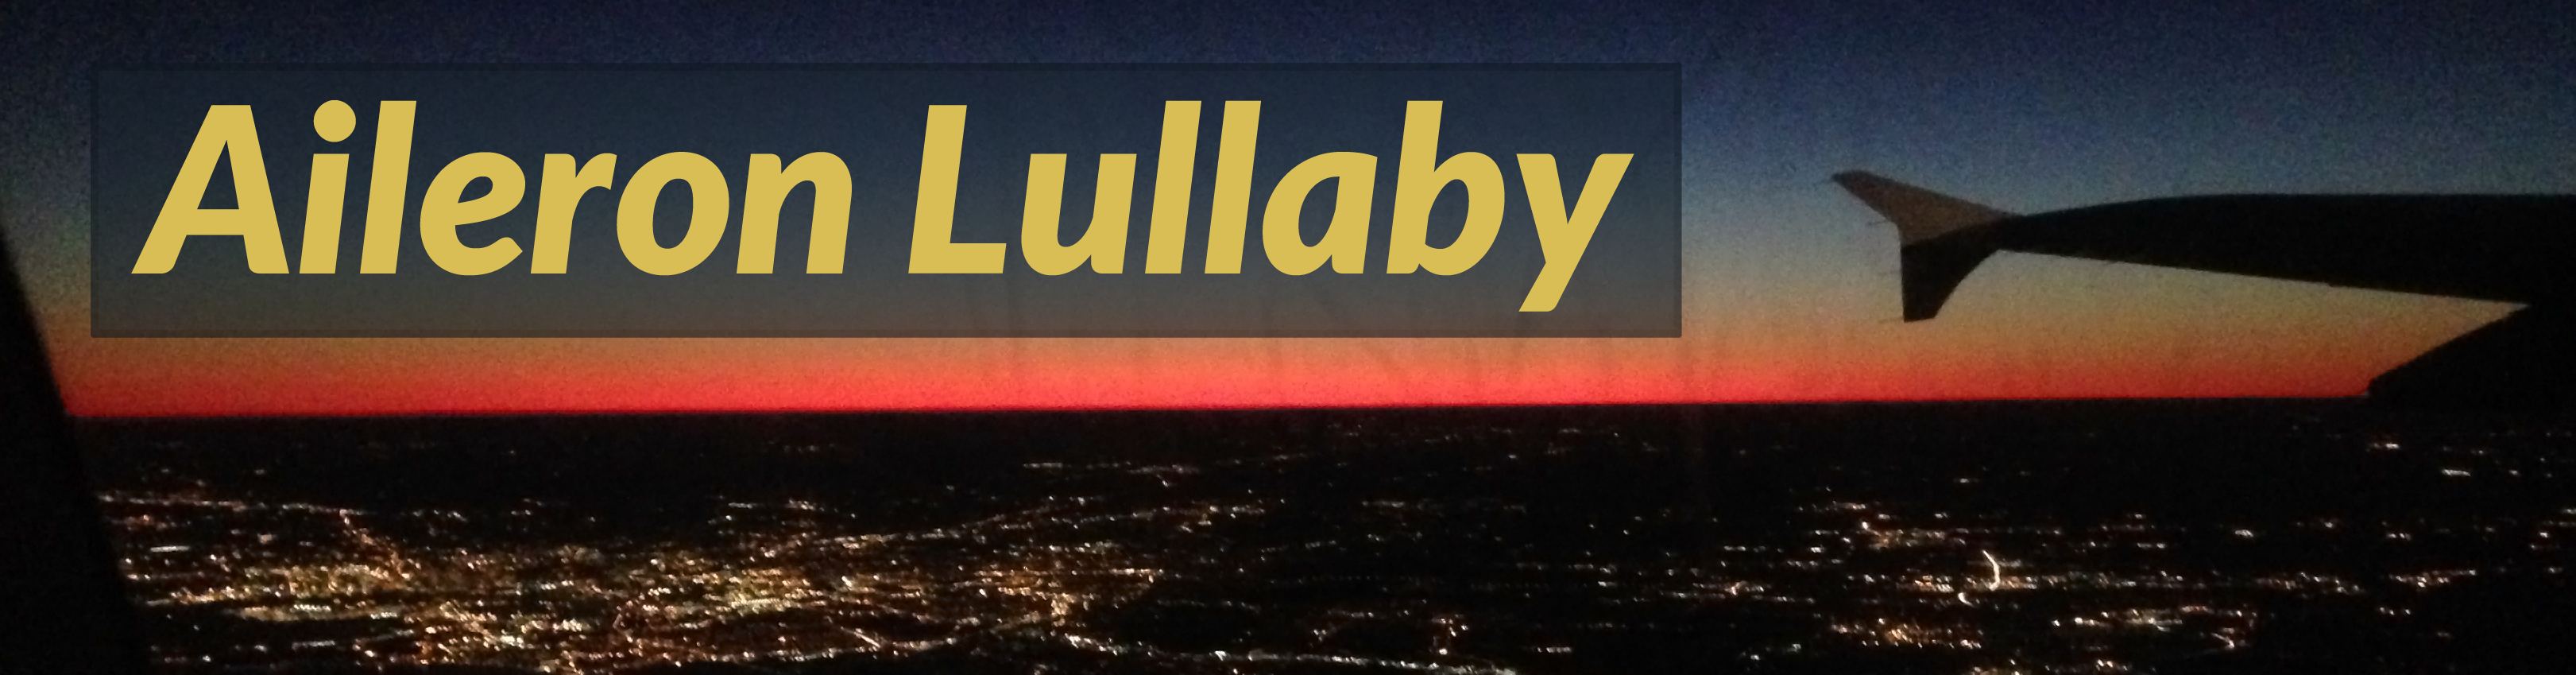 Aileron Lullaby cover image